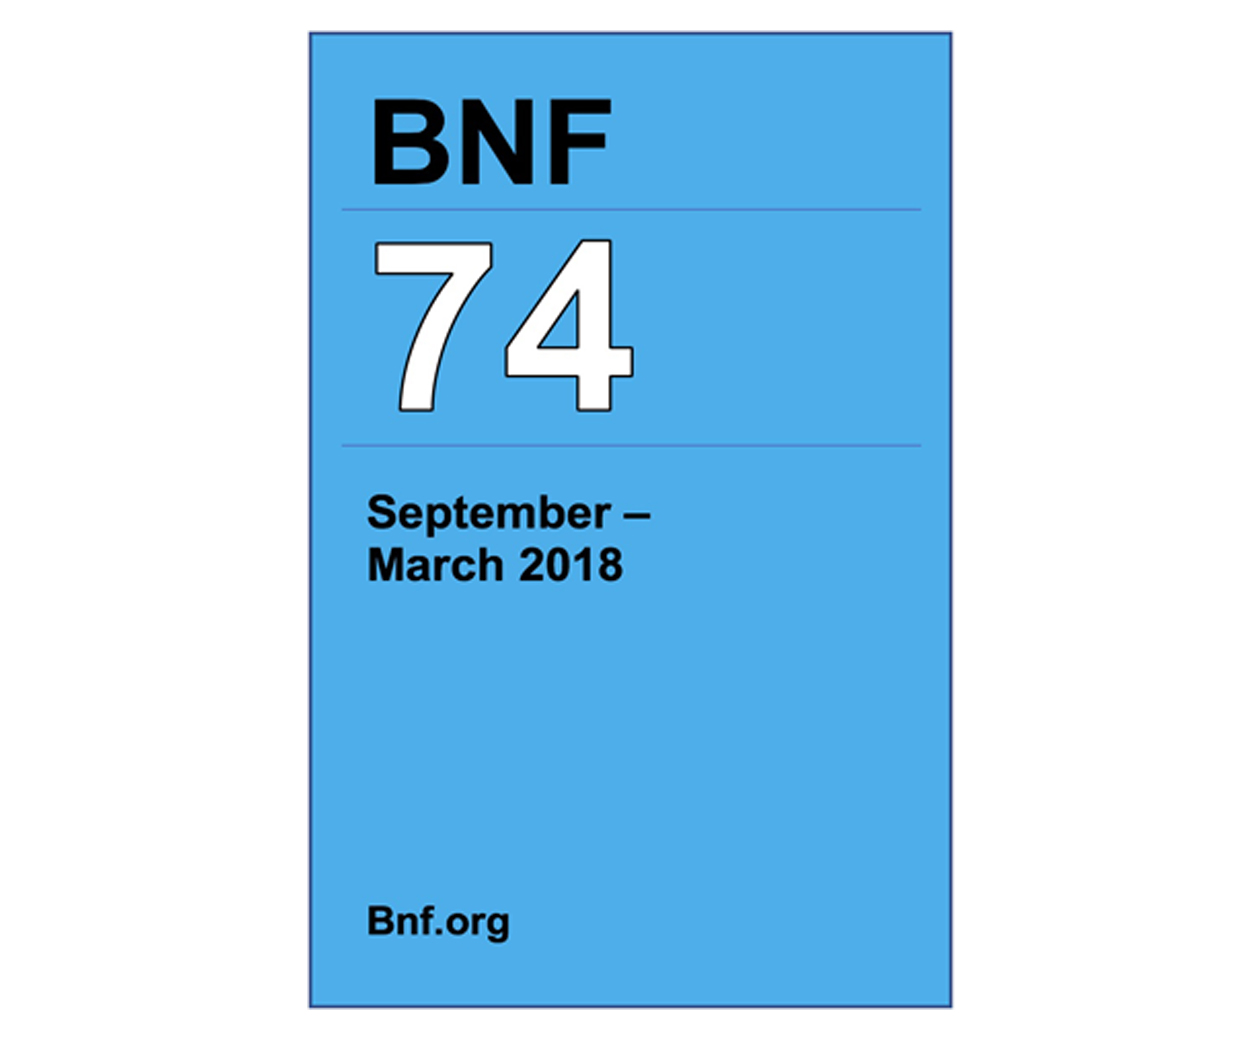 BNF 74 (British National Formulary)